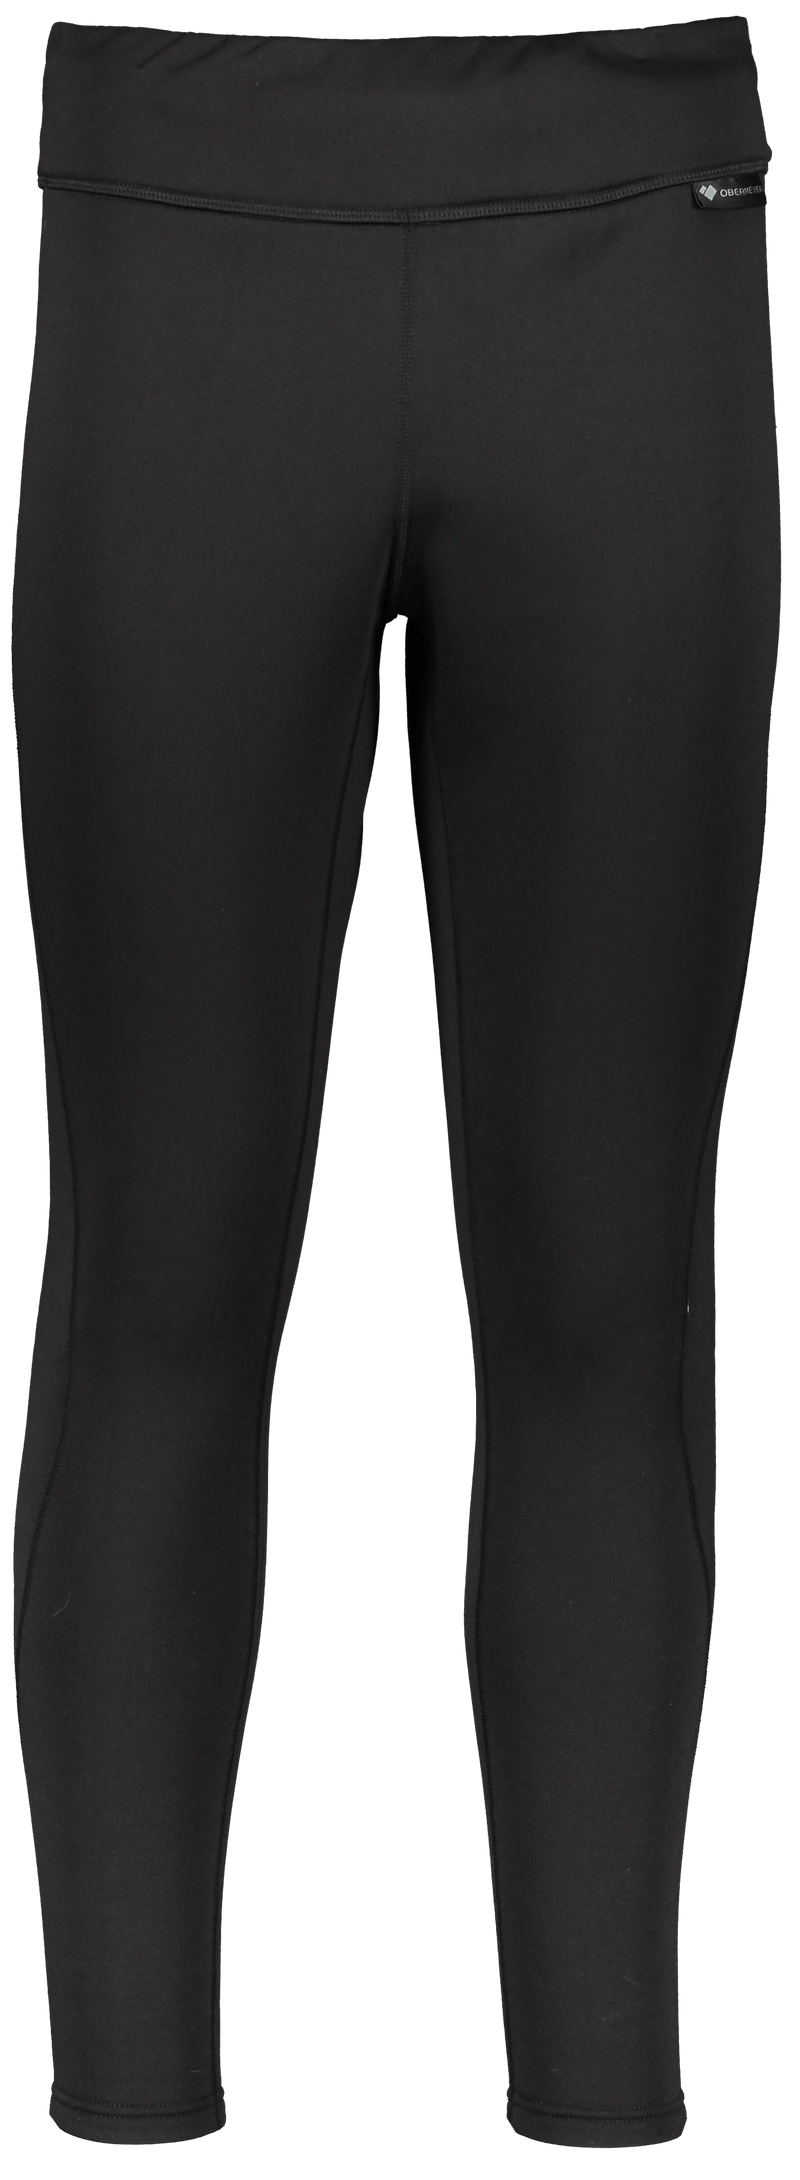 Obermeyer Women'S Ultragear Bottom